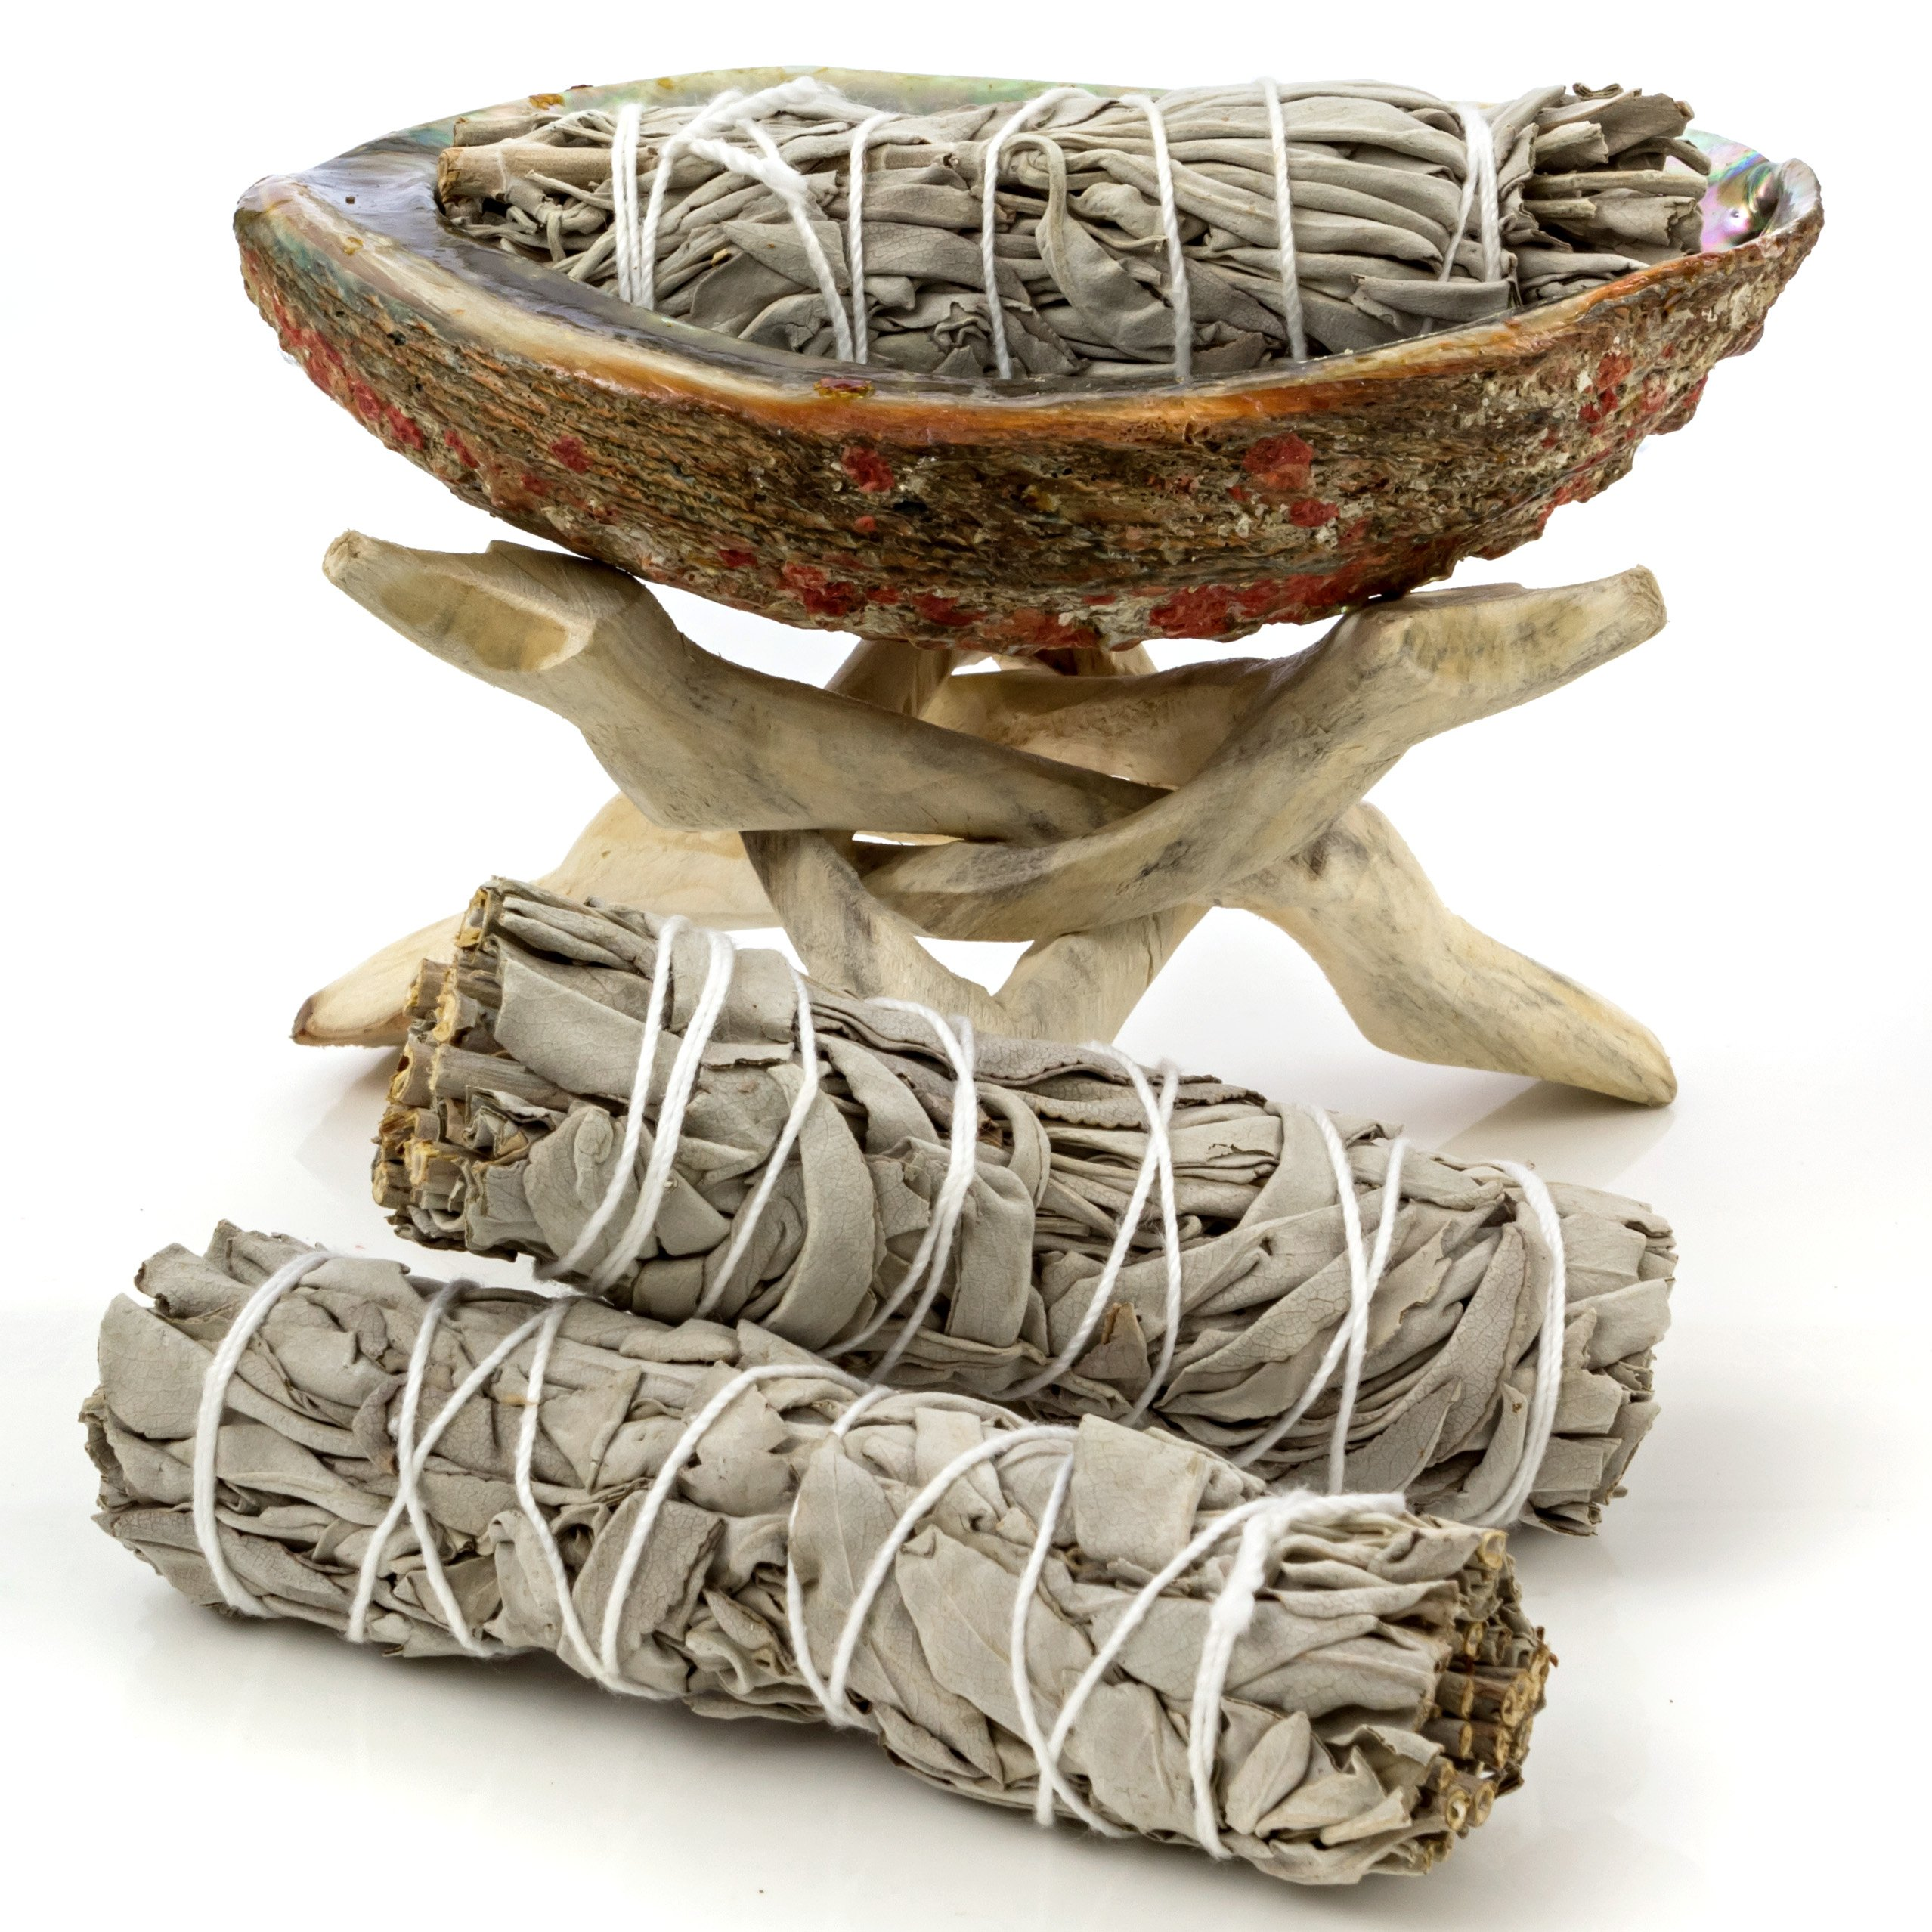 5'' Premium Abalone Shell with Natural Wooden Tripod Stand and 3 California White Sage Smudge Sticks for Incense Burning, Home Fragrance, Energy Clearing, Yoga, Meditation